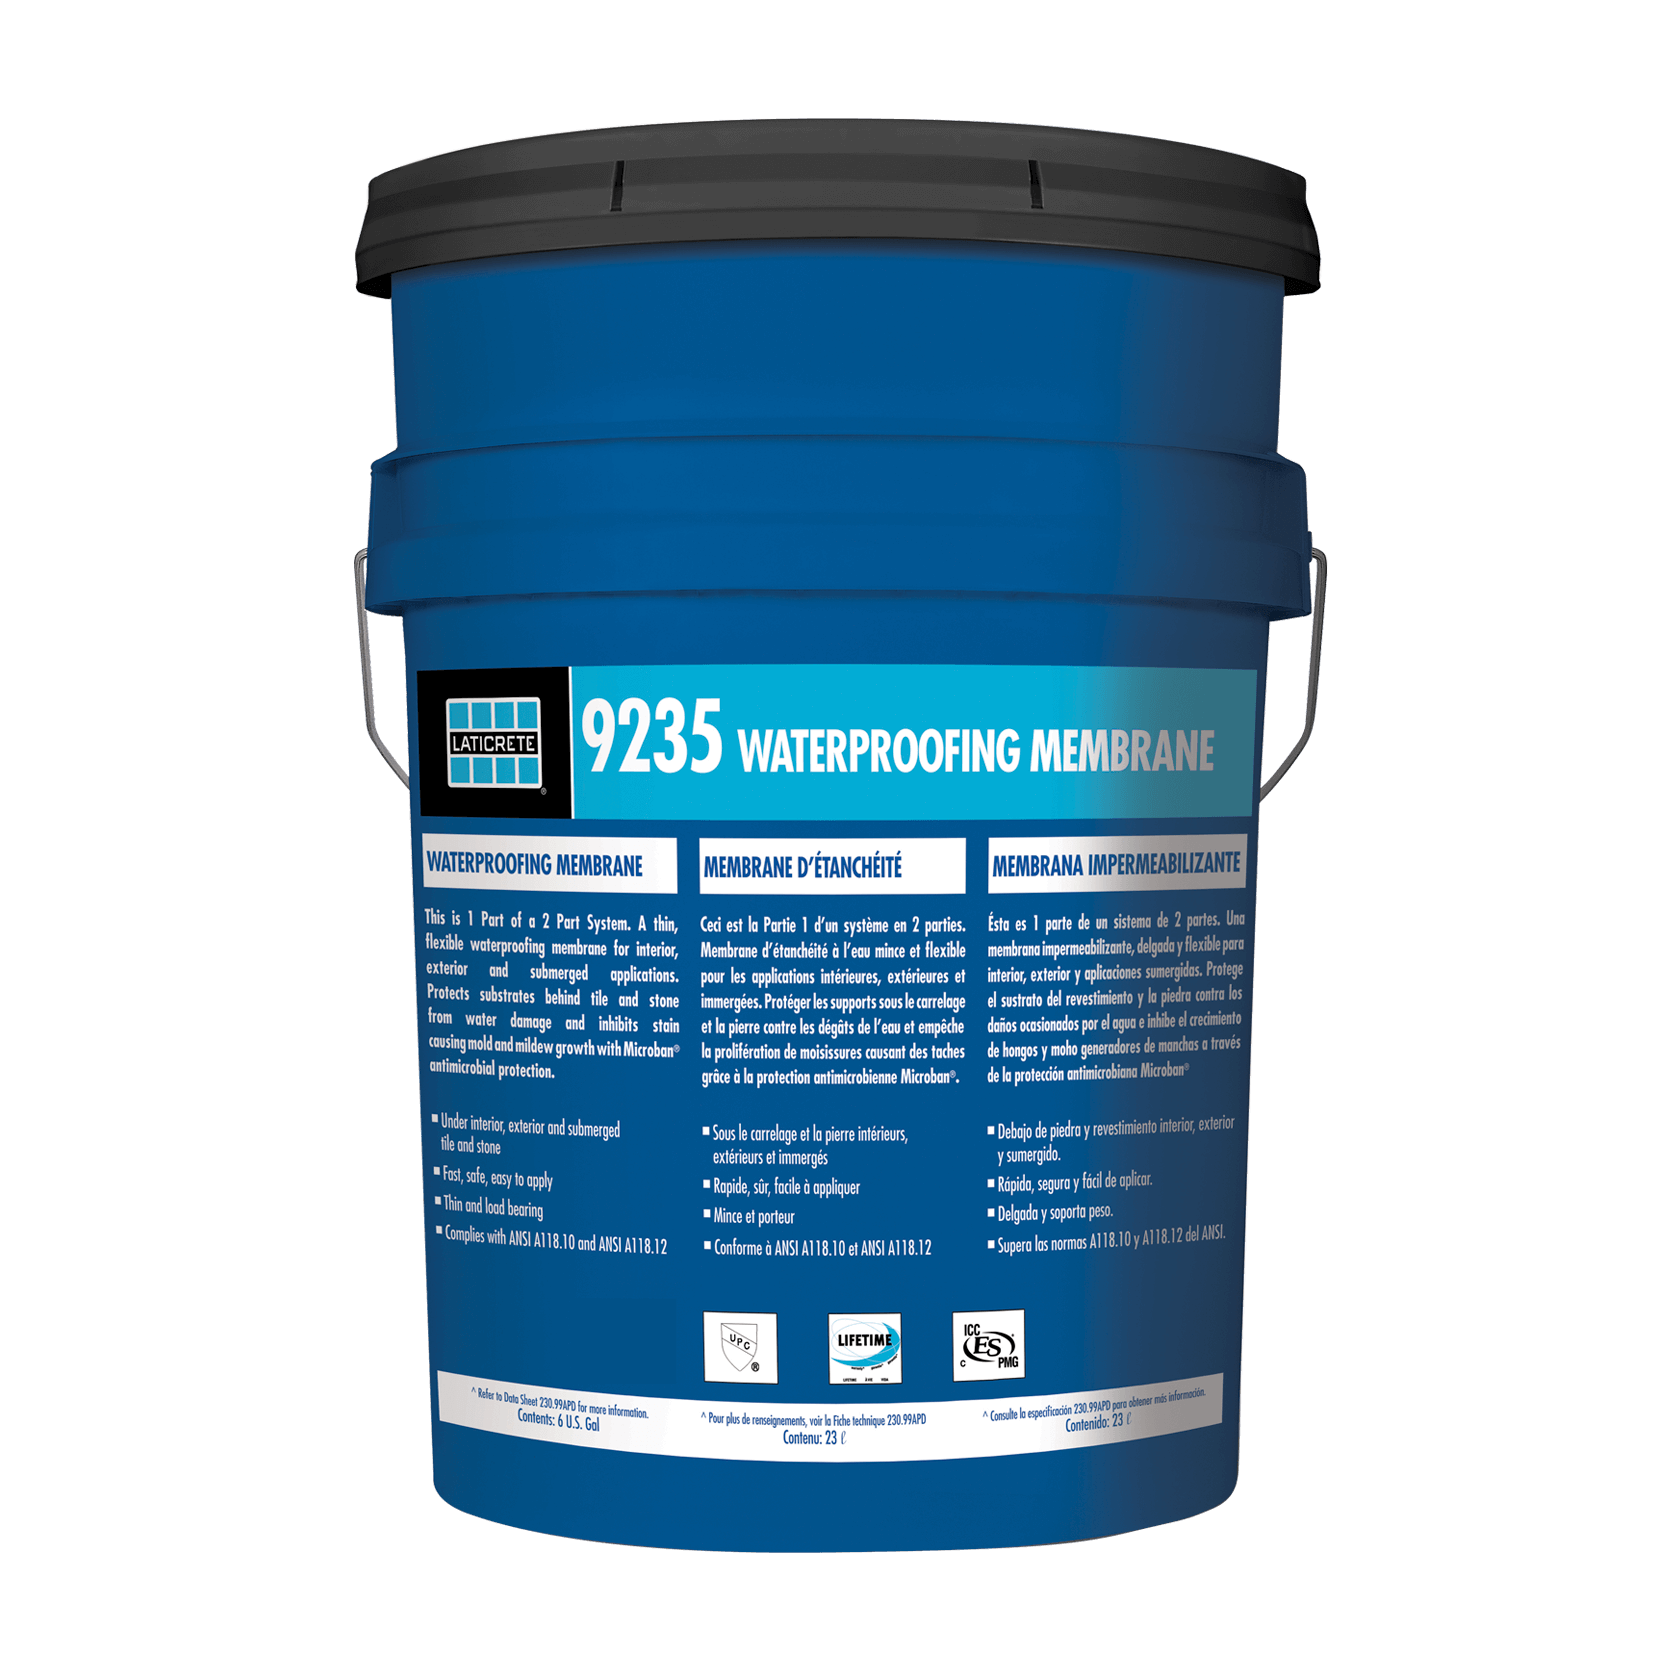 9235 Waterproofing Membrane Laticrete